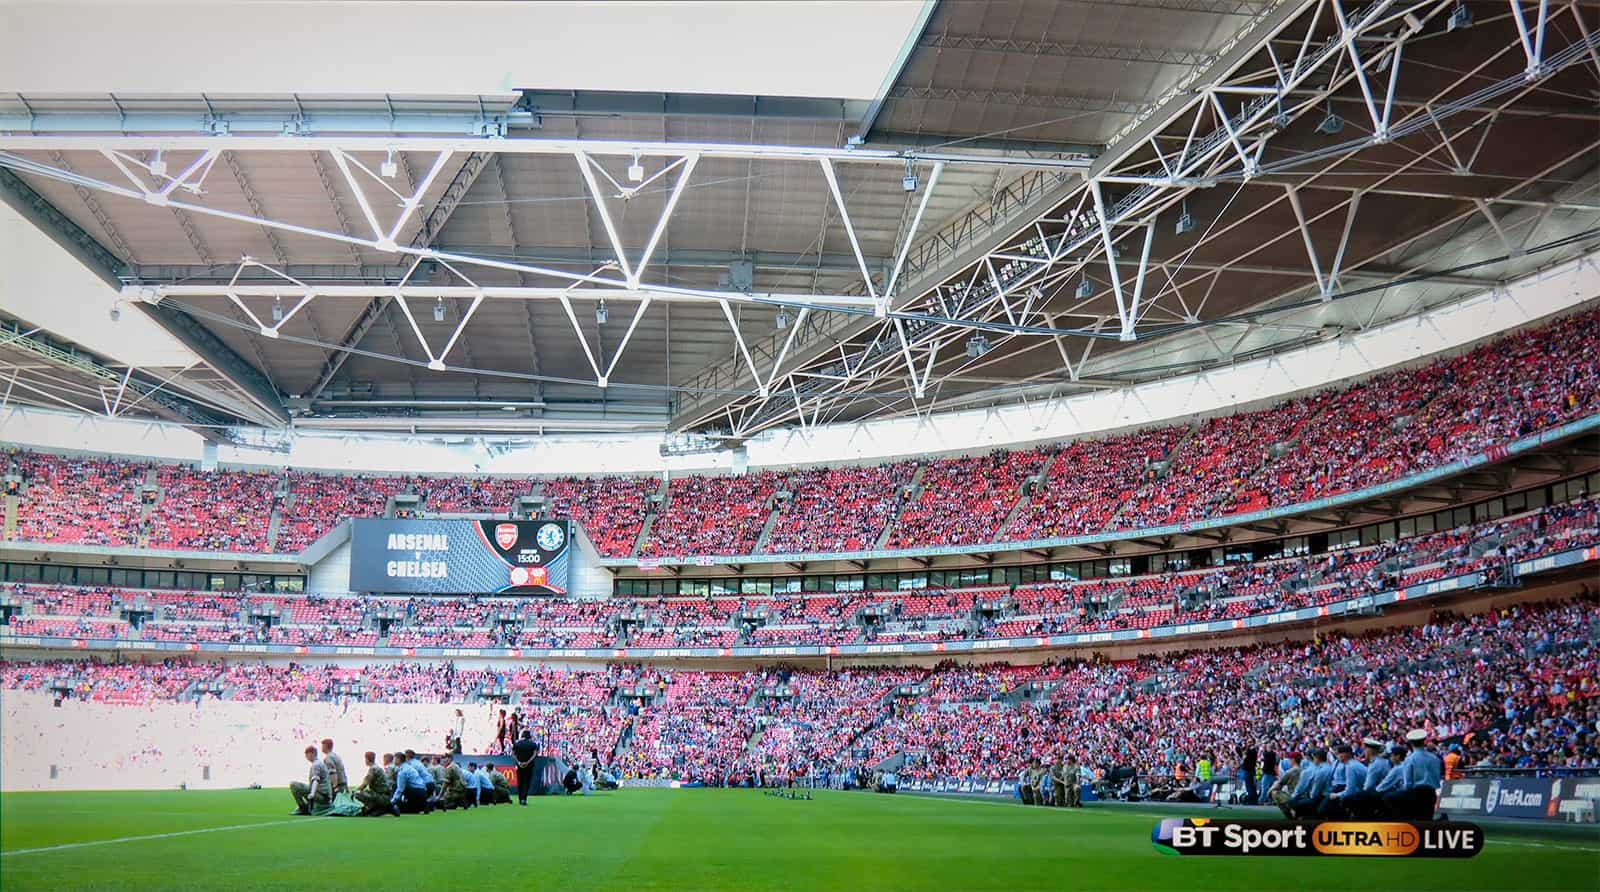 Crowd scene at Wembley